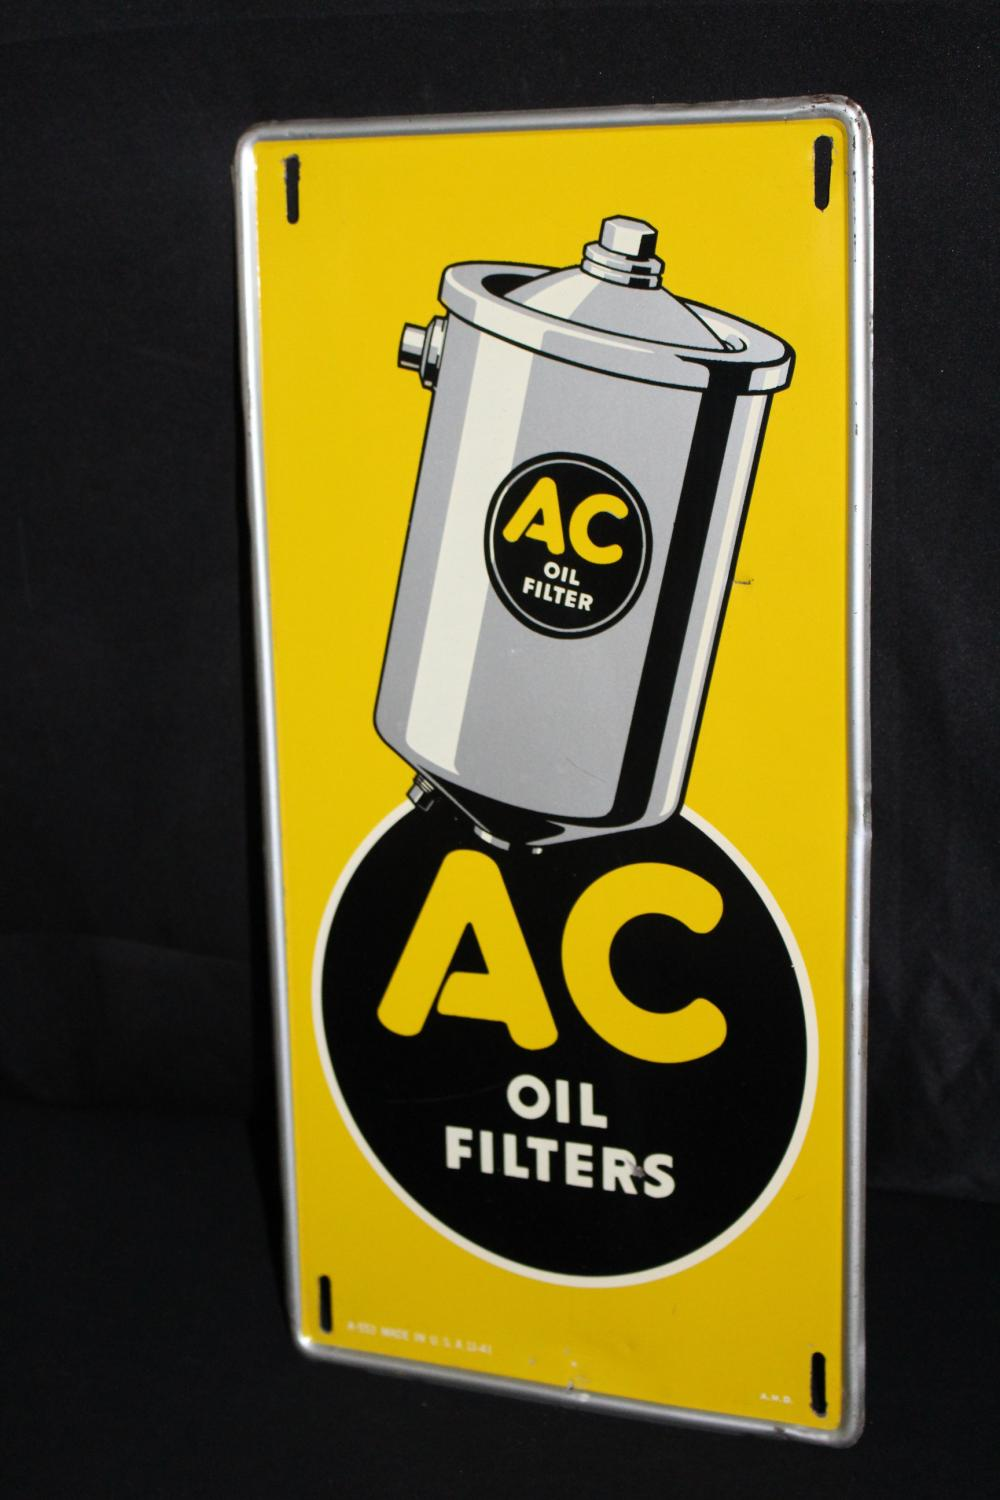 AC OIL FILTERS TIN SIGN